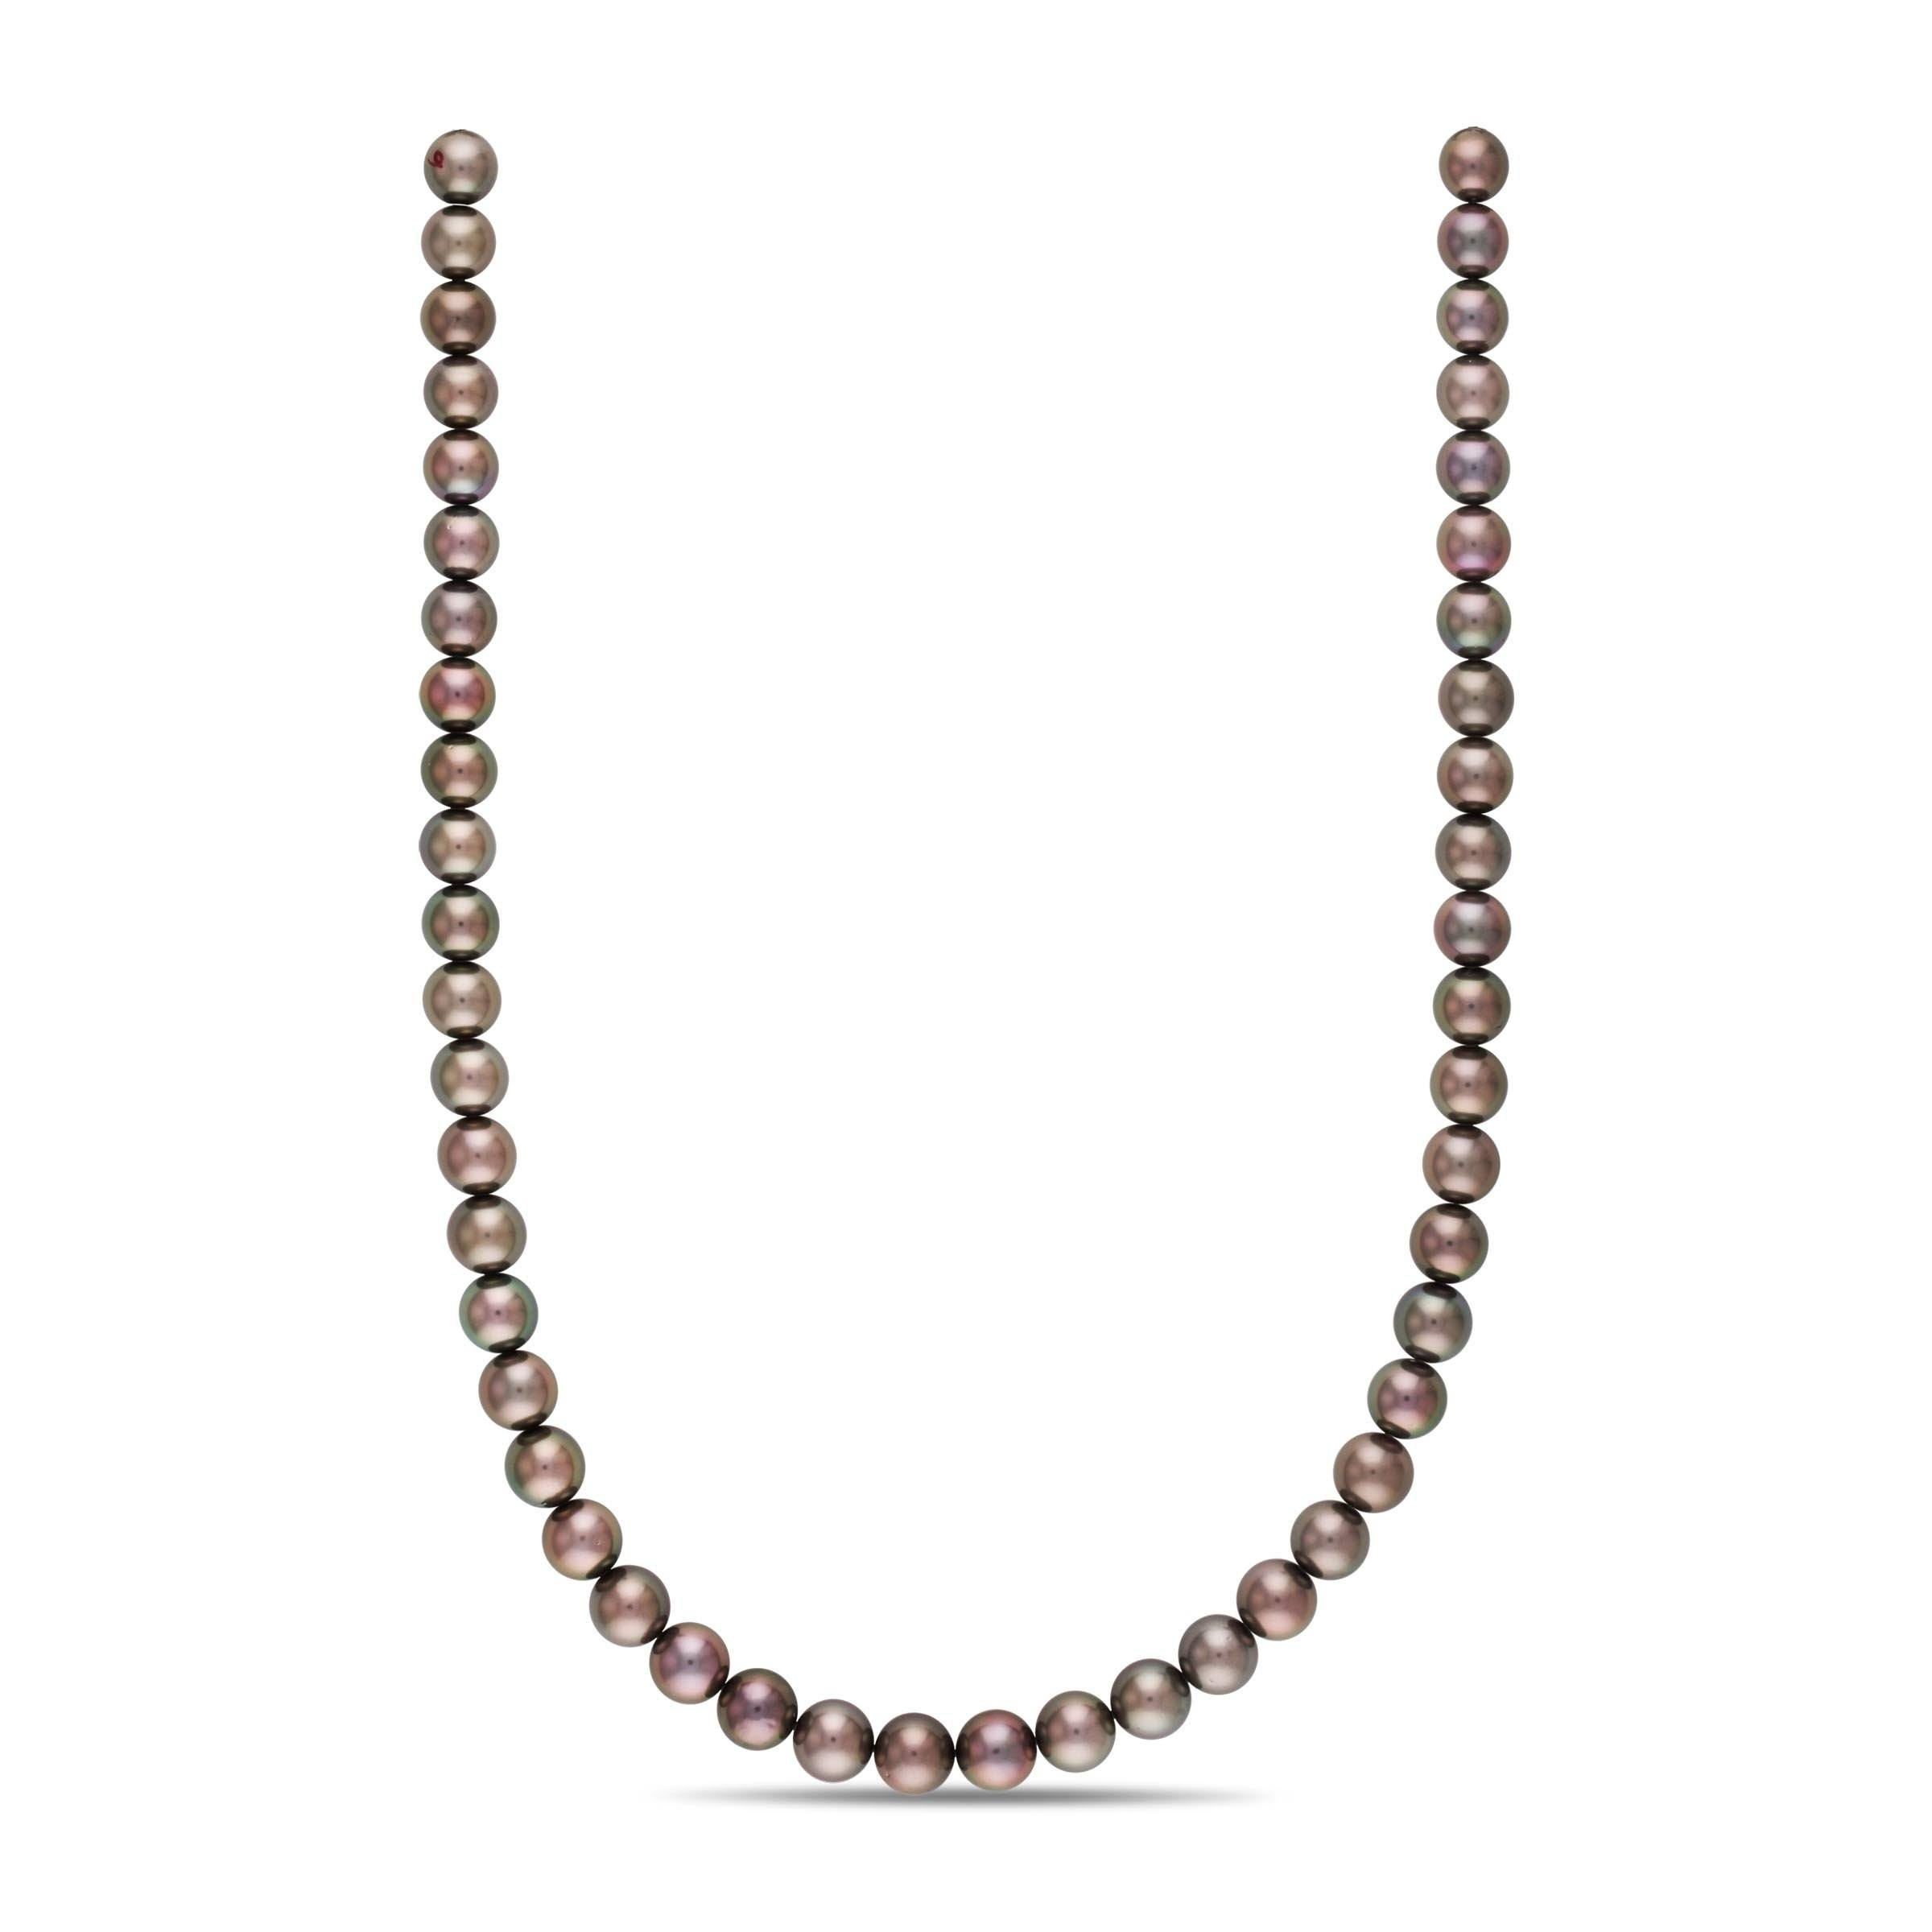 18-inch 8.1-9.0 mm AA+/AAA Round Tahitian Pearl Necklace